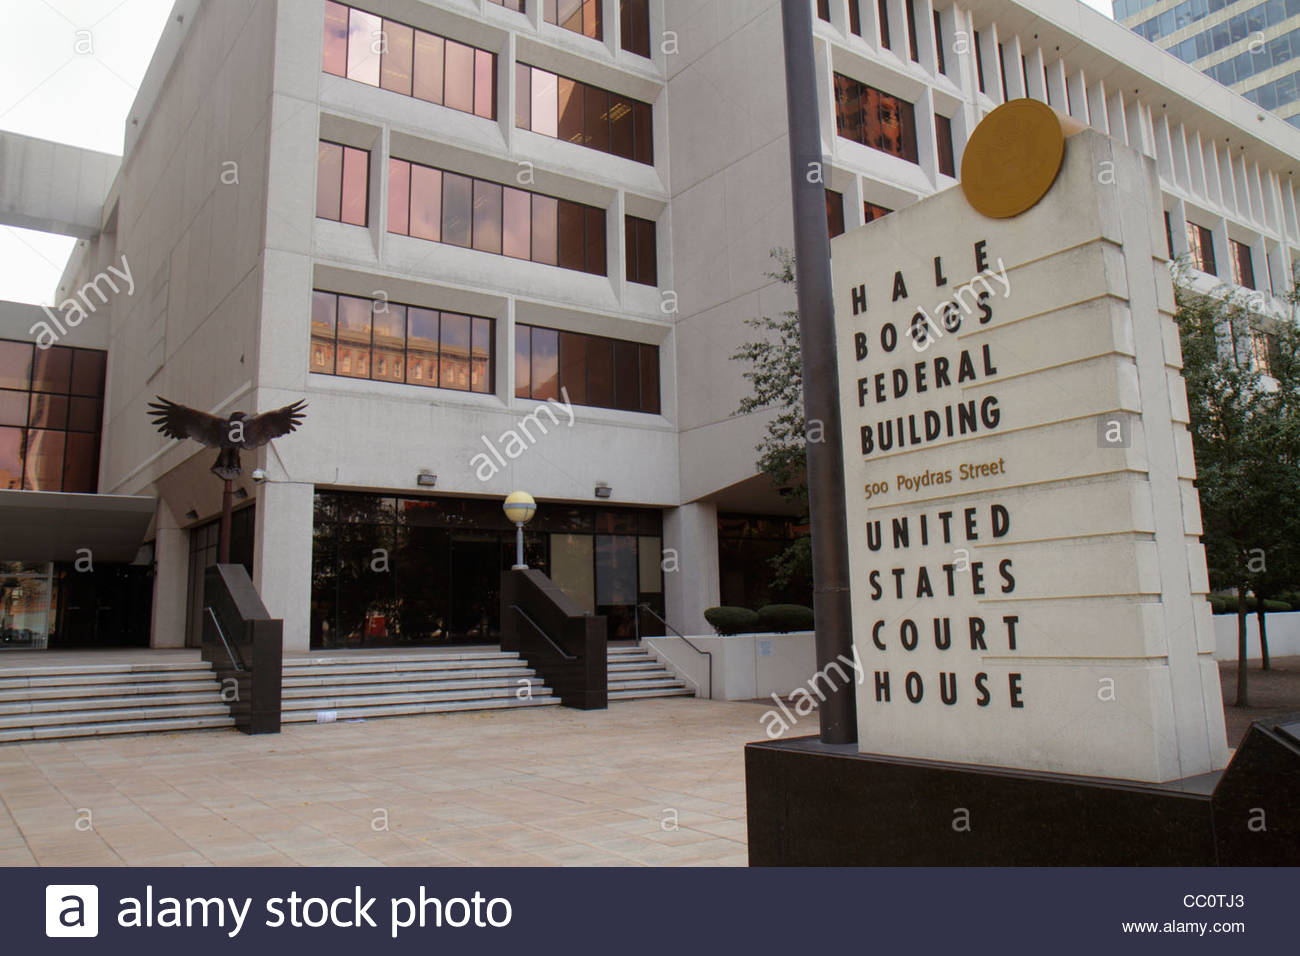 New Orleans Louisiana Poydras Street Hale Boggs Federal Building government United States Courthouse eagle plaza - Stock Image